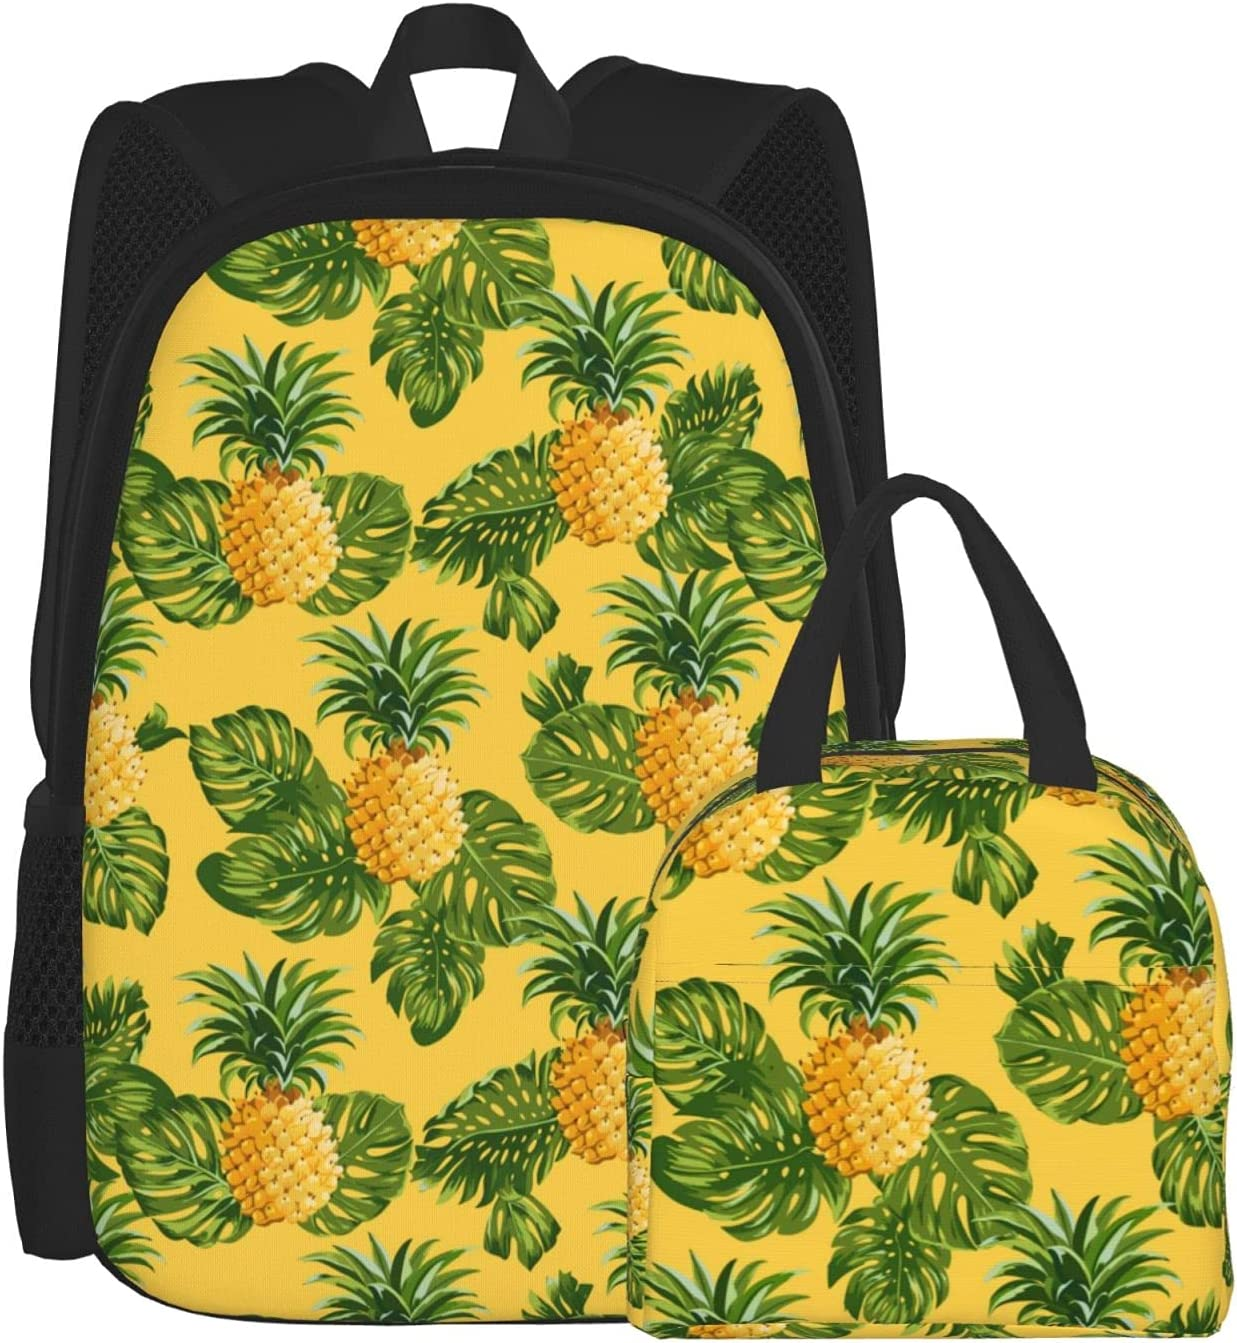 Backpack Lunch Bag Sets Bombing new work for Tropical Pineapples and Girls Boys Sales for sale